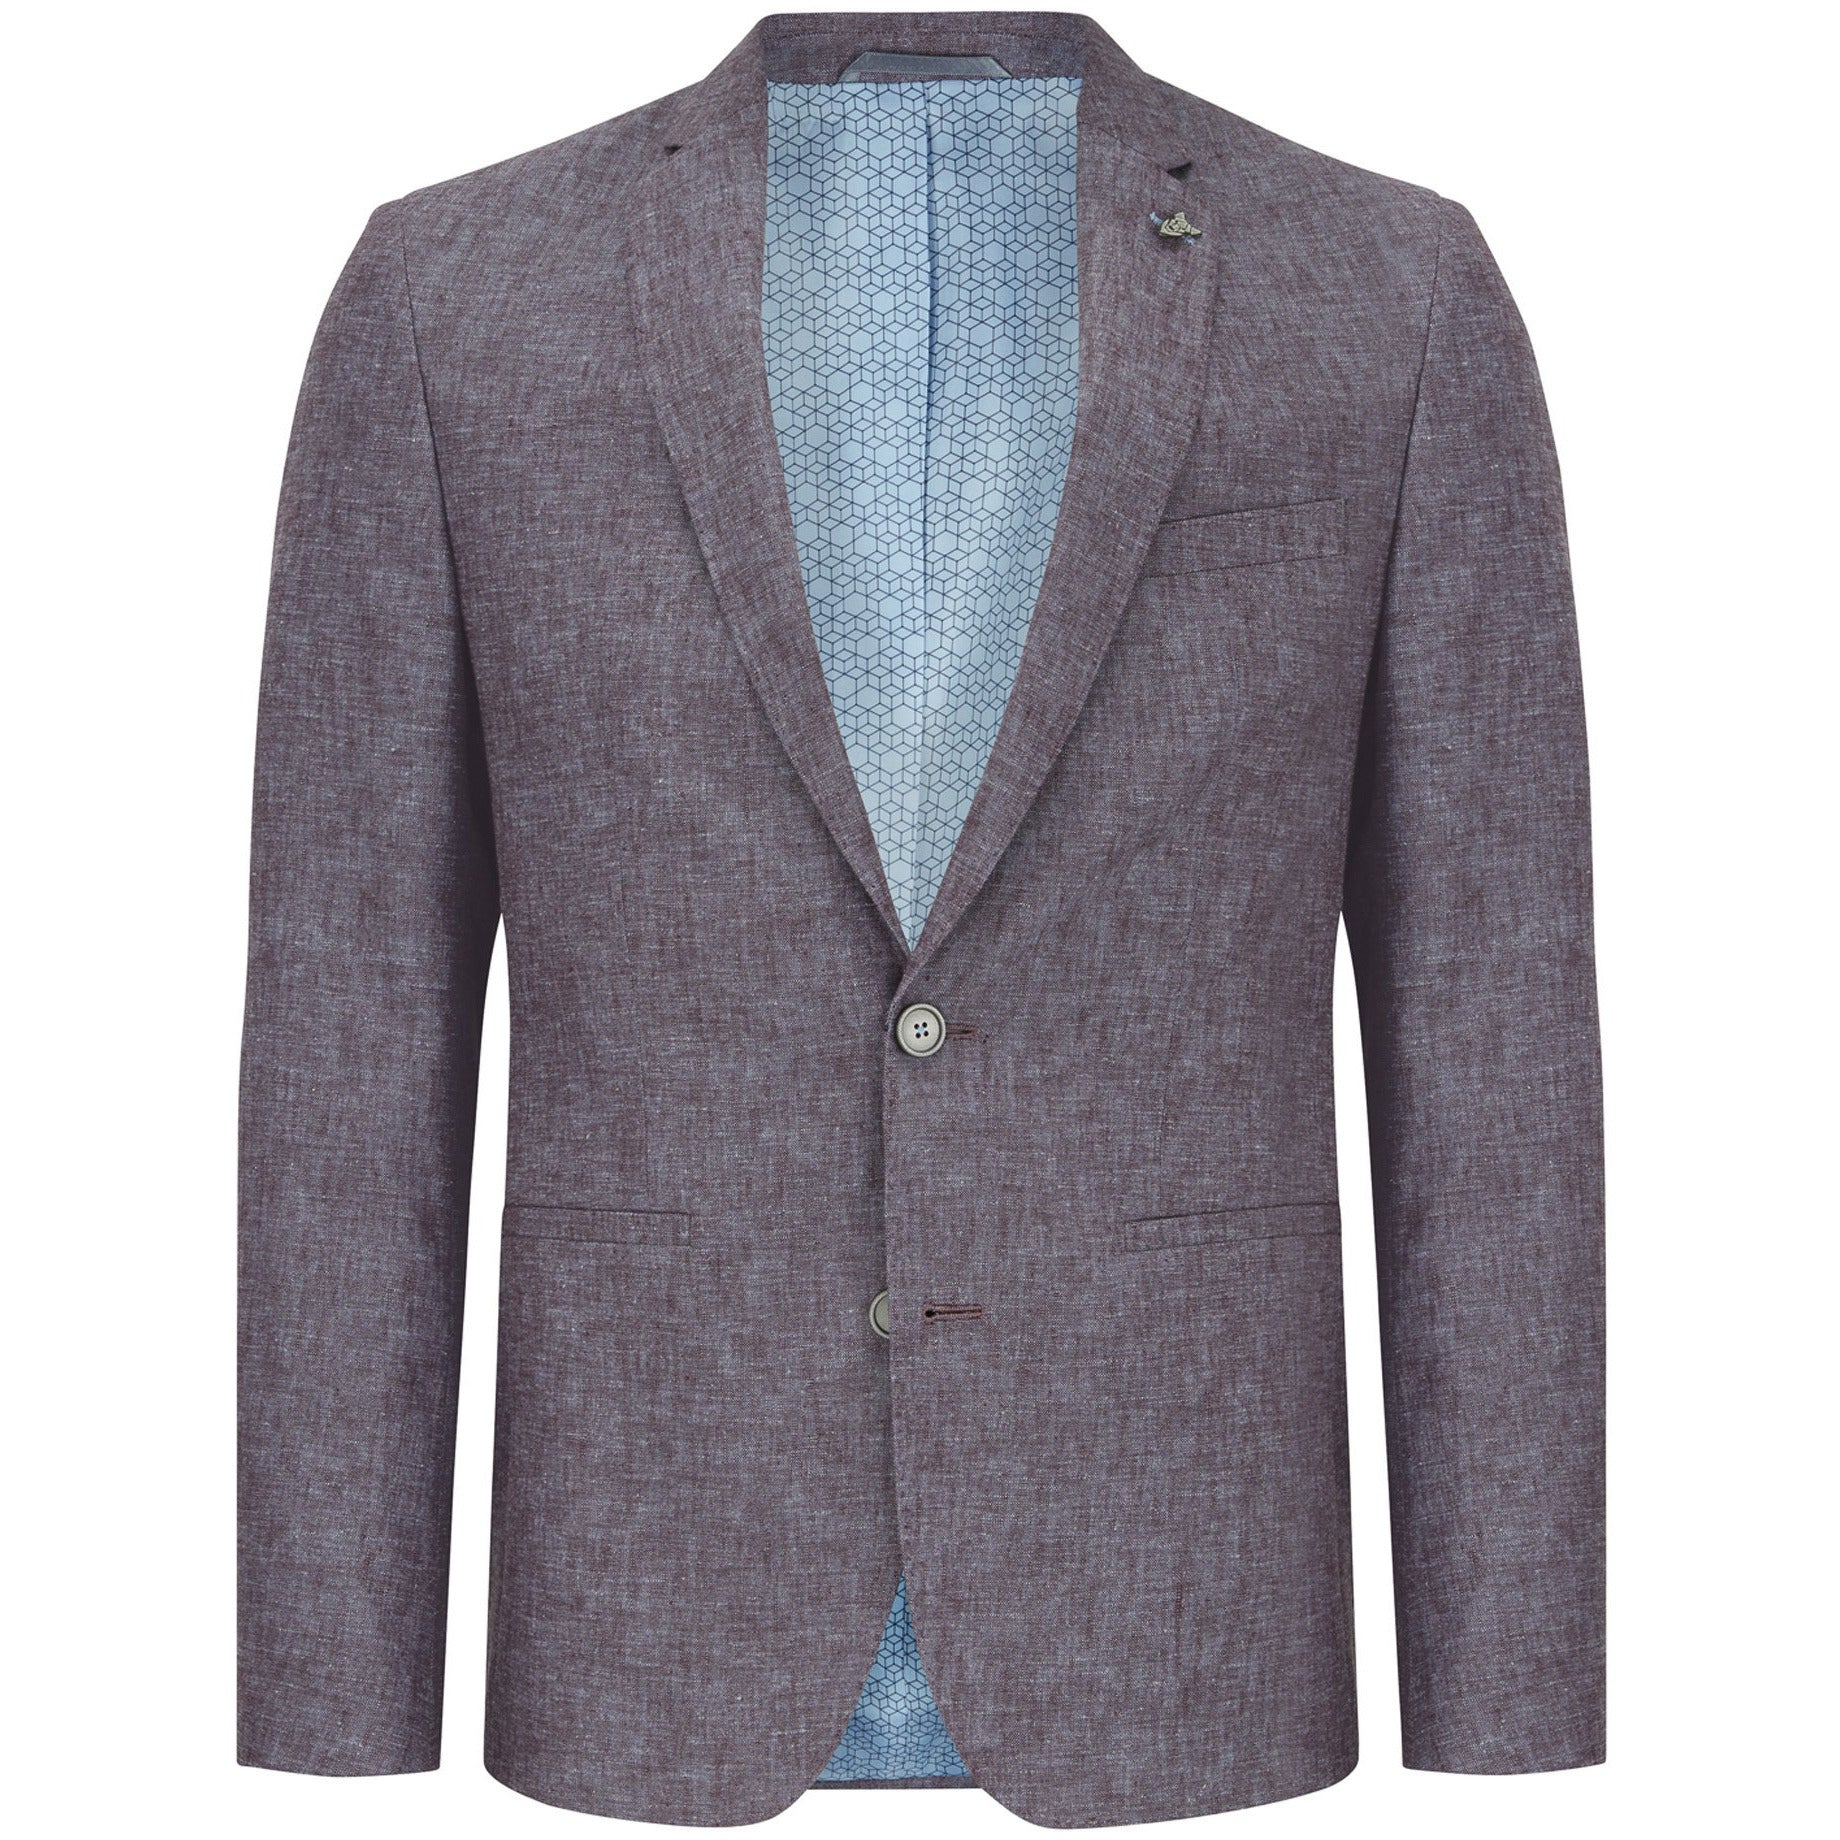 DANIEL GRAHAME : Wine Jacket (38 Reg)